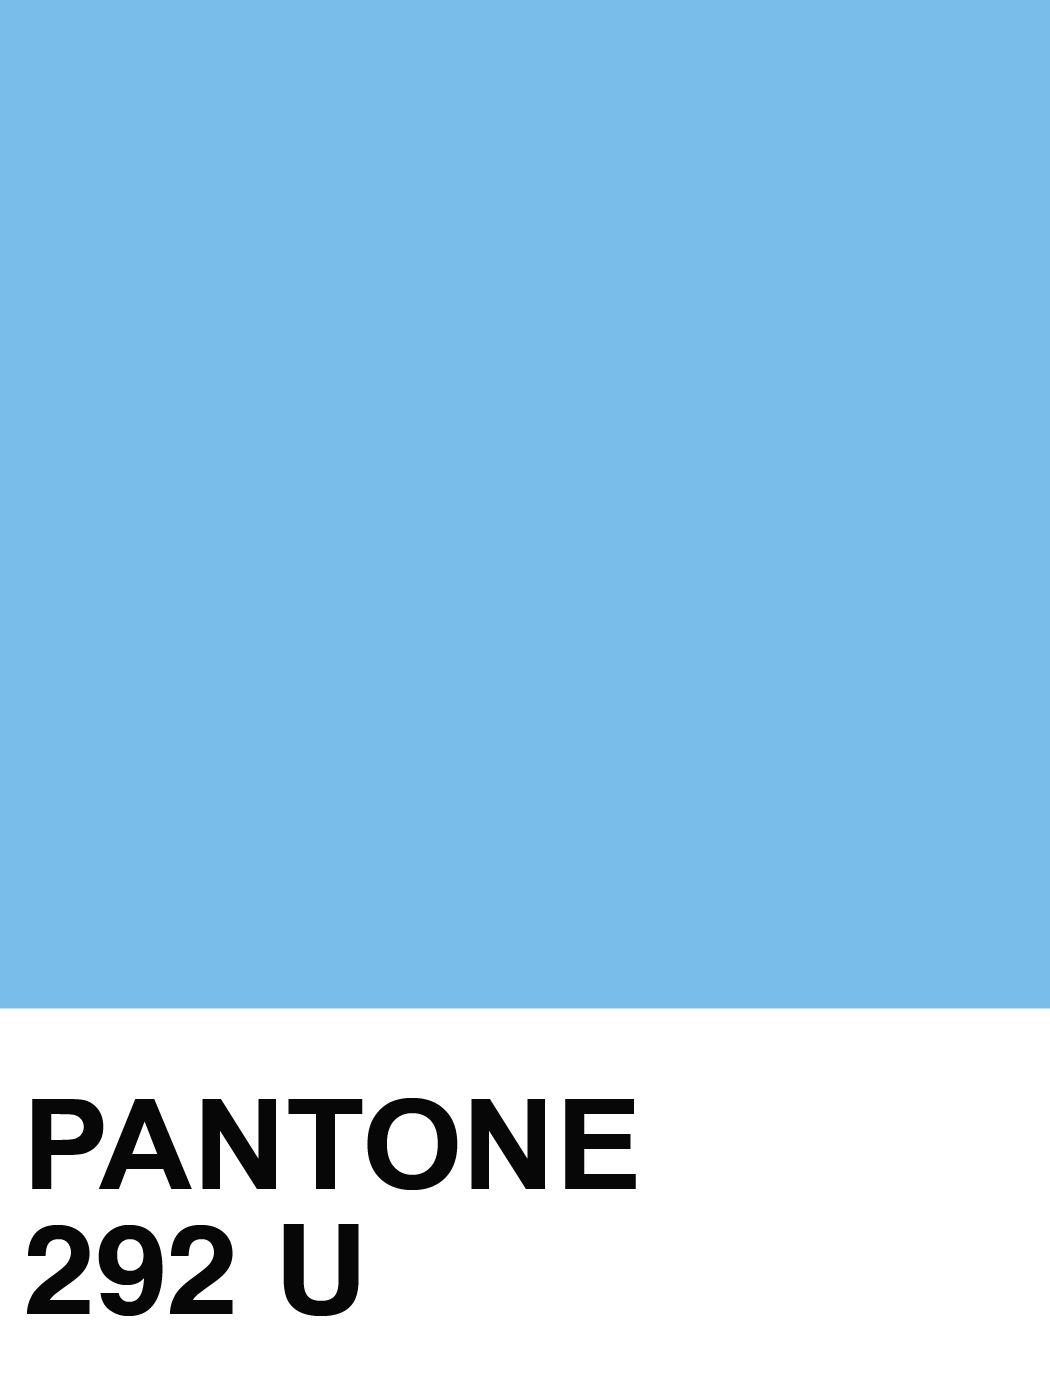 Pantone 292 U Blue Color Swatches Columbia